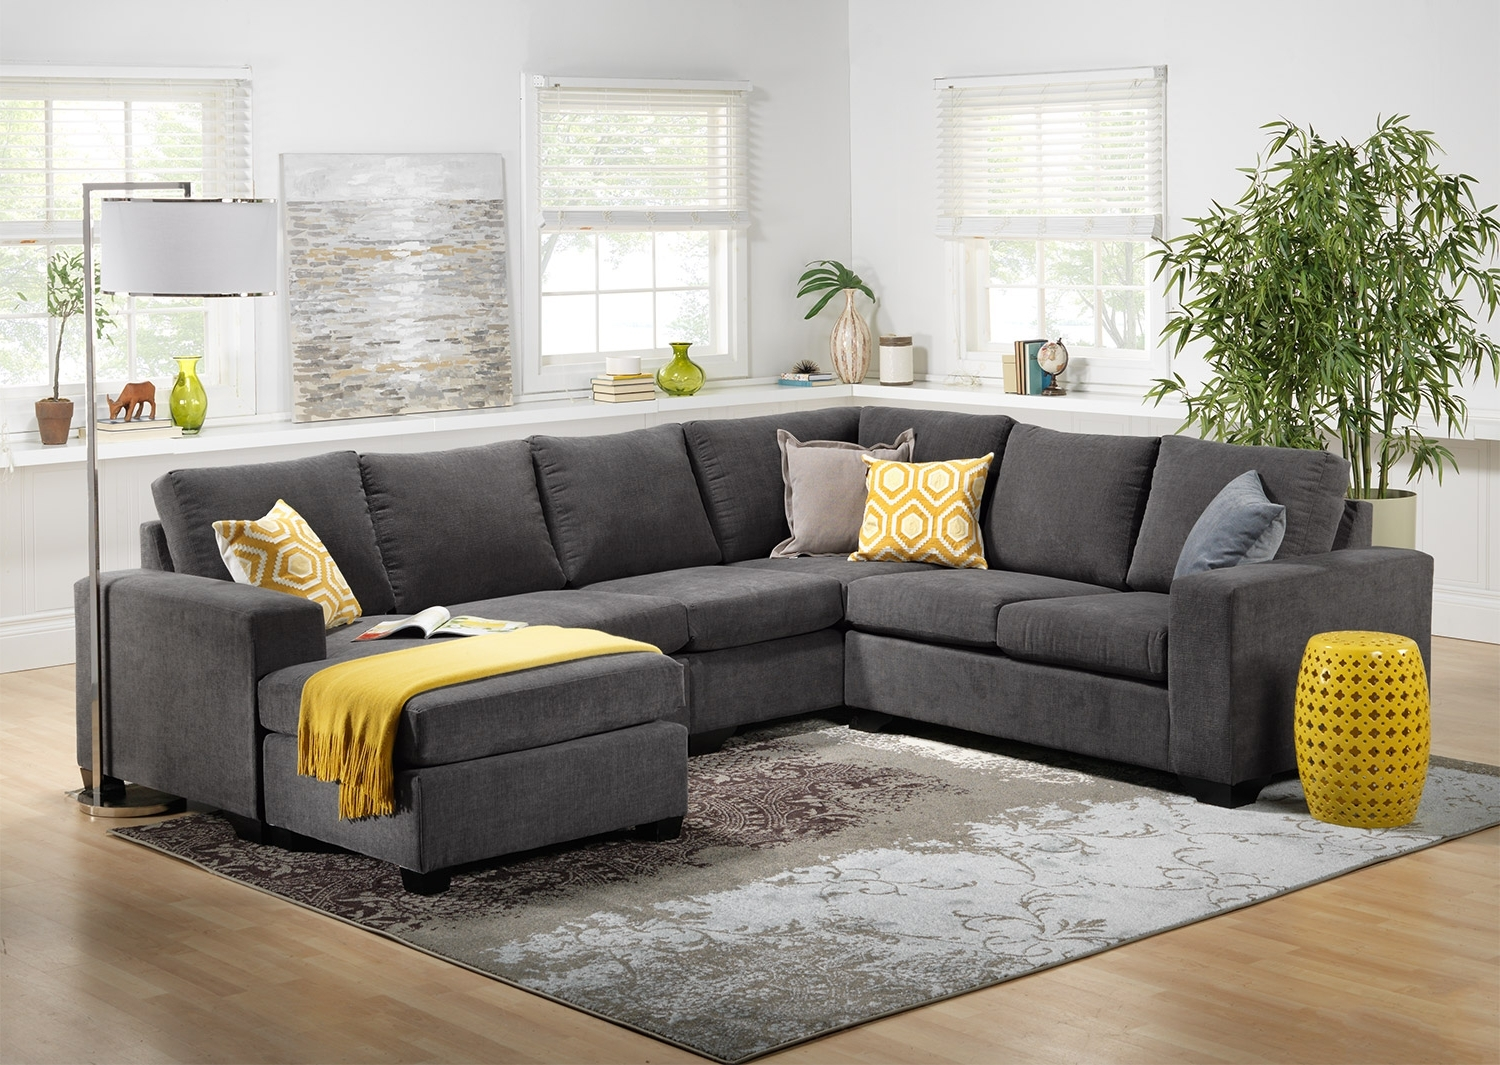 Best And Newest Hickory Nc Sectional Sofas In Living Room Design : Stacy Furniture Living Room Sectional Hickory (View 6 of 15)